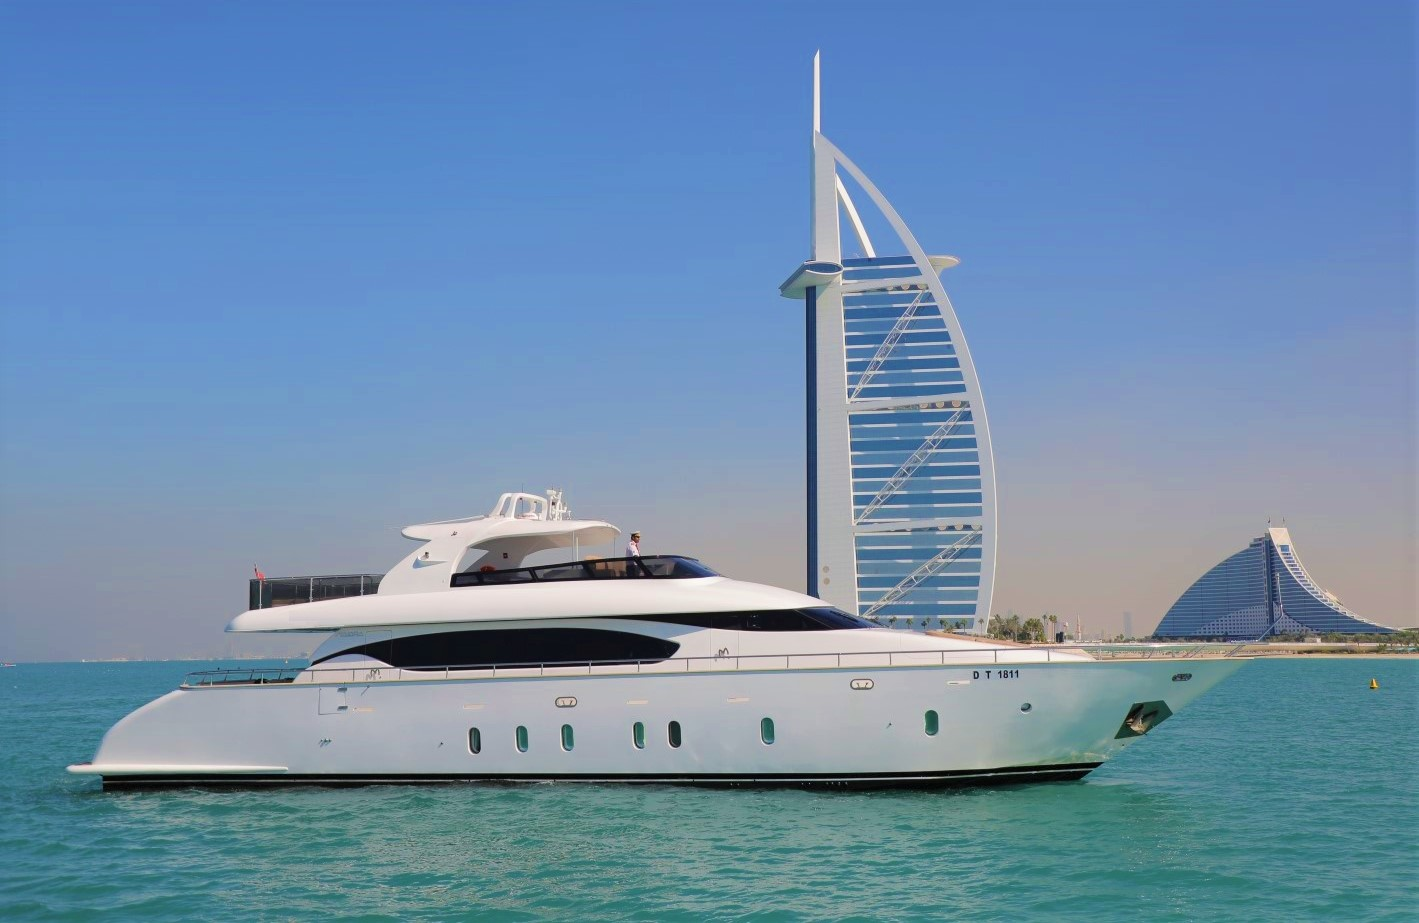 96 Ft - White versace Yacht Rental Dubai